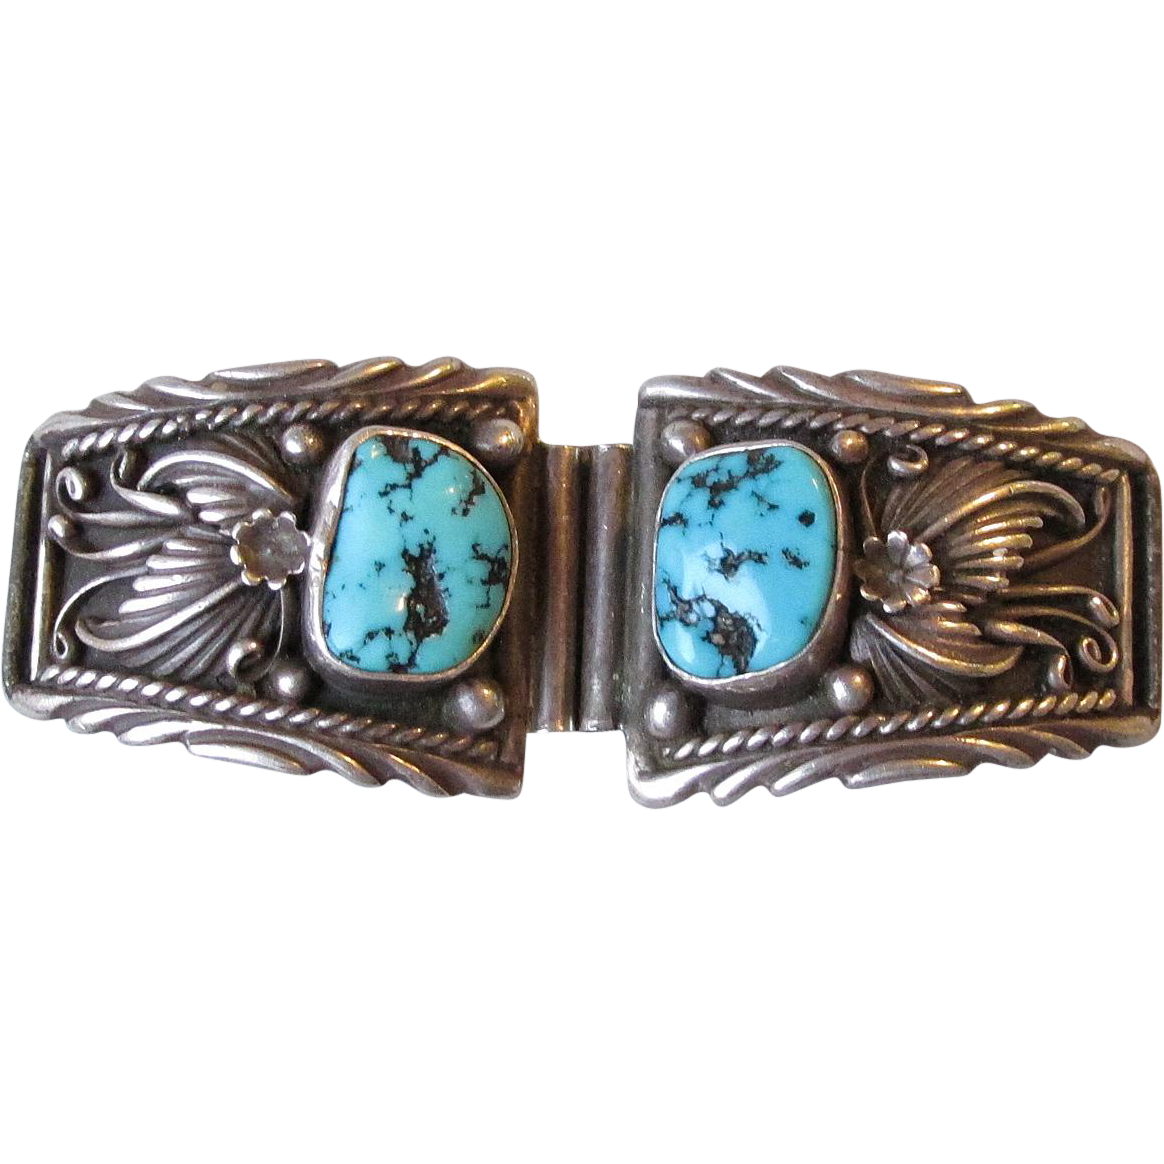 Vintage Native American Navajo Sterling Silver & Turquoise Watch Tips, Signed AC